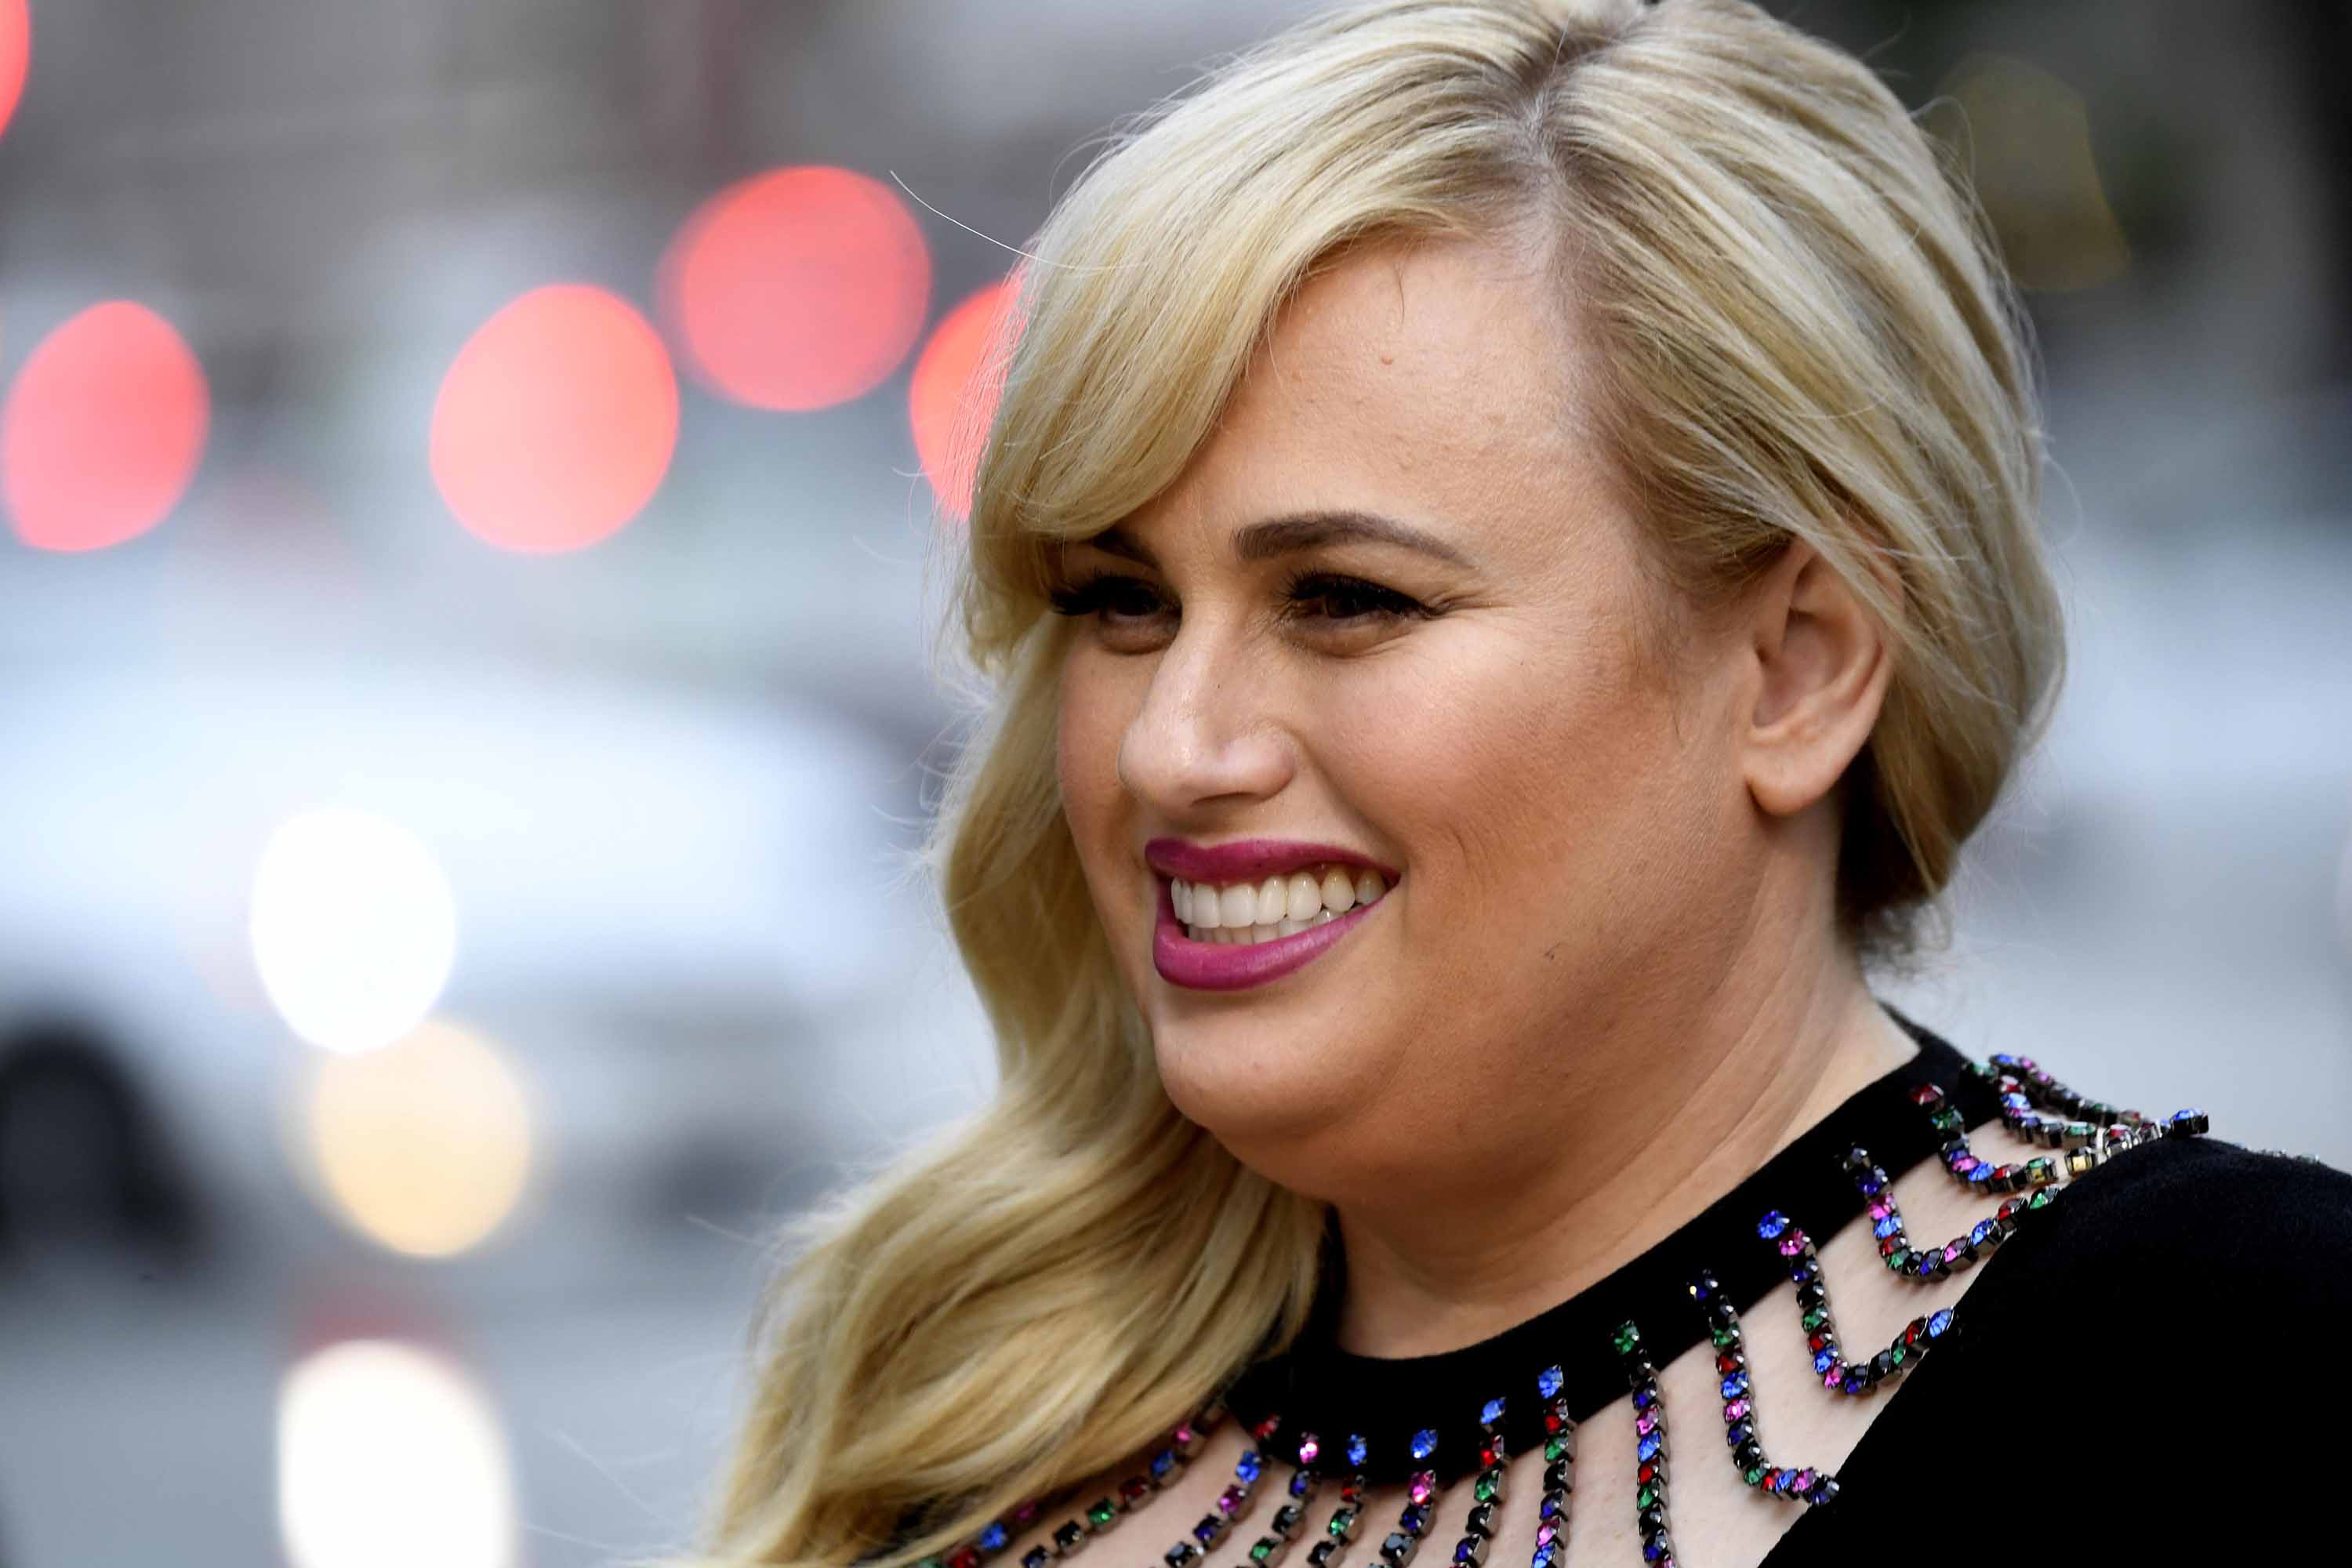 Rebel Wilson says she has never been drunk — and James Corden is stunned